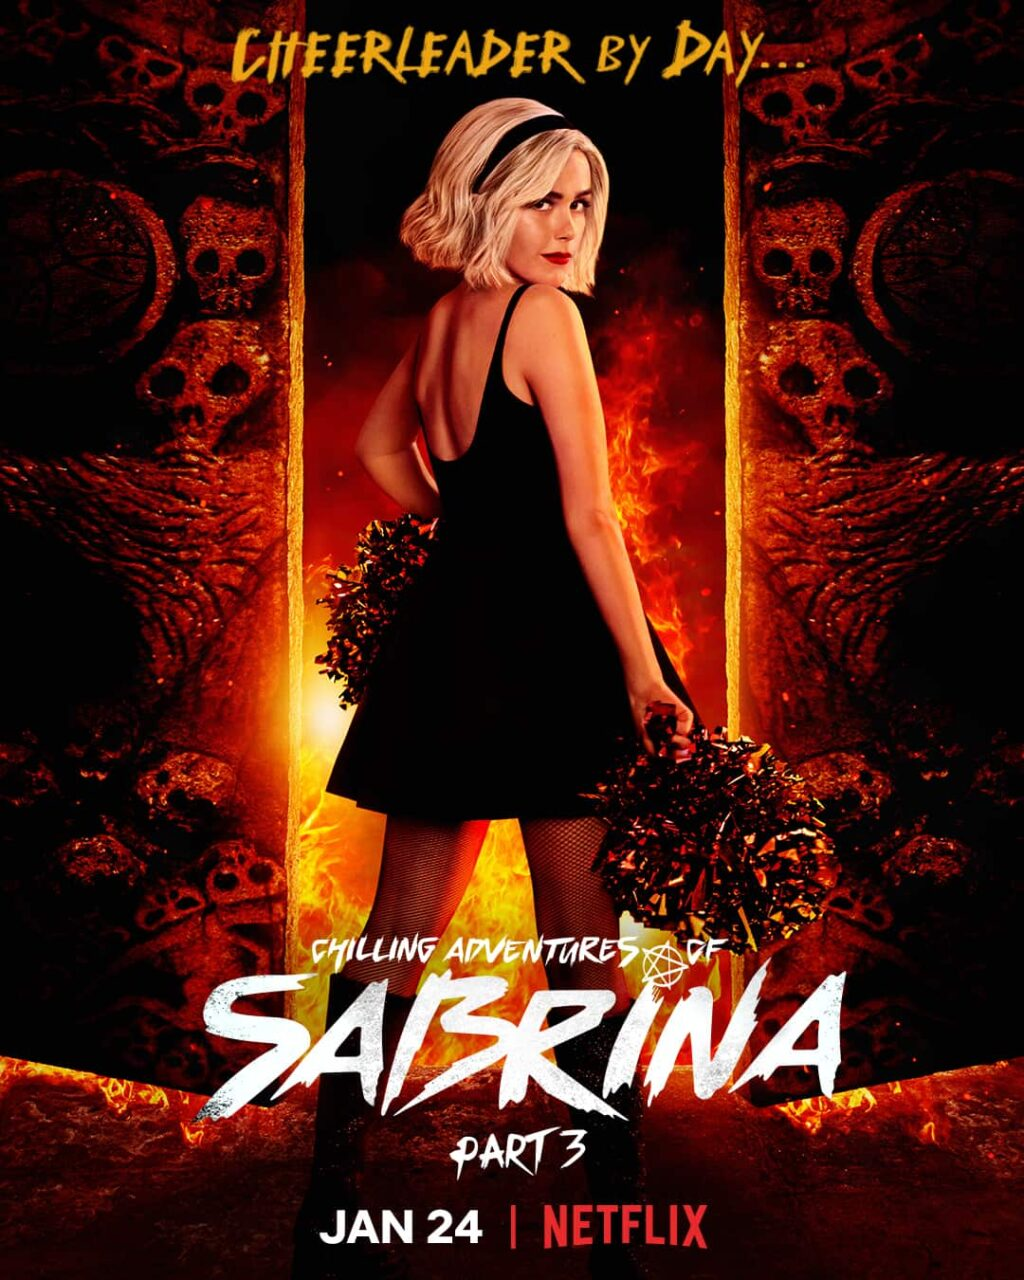 Sabrina 3 Poster 1024x1280 - Trailer: CHILLING ADVENTURES OF SABRINA Part 3 Goes To Hell